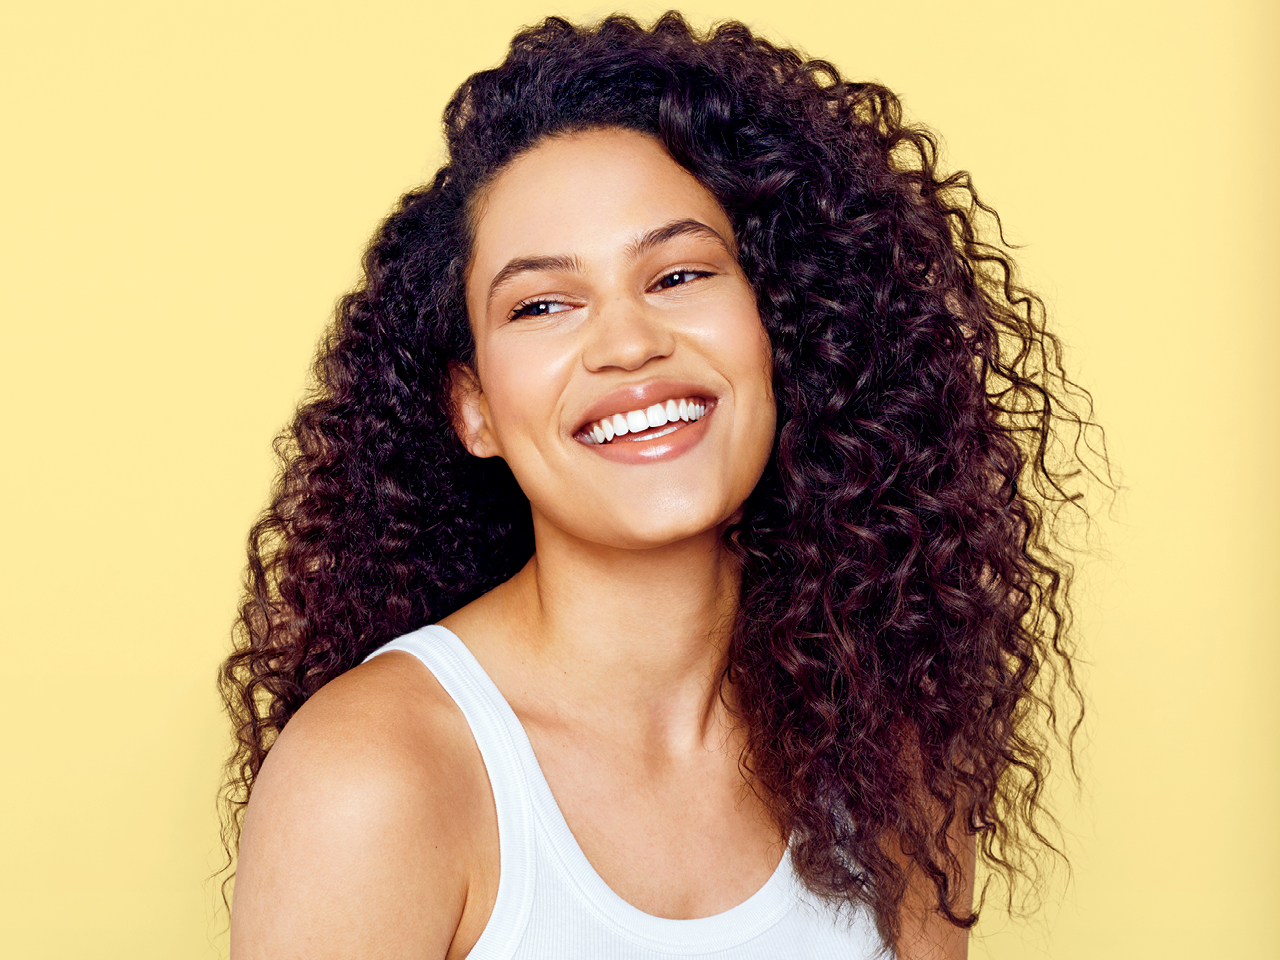 A model with curly hair against a yellow background to illustrate tips on how to air-dry hair.